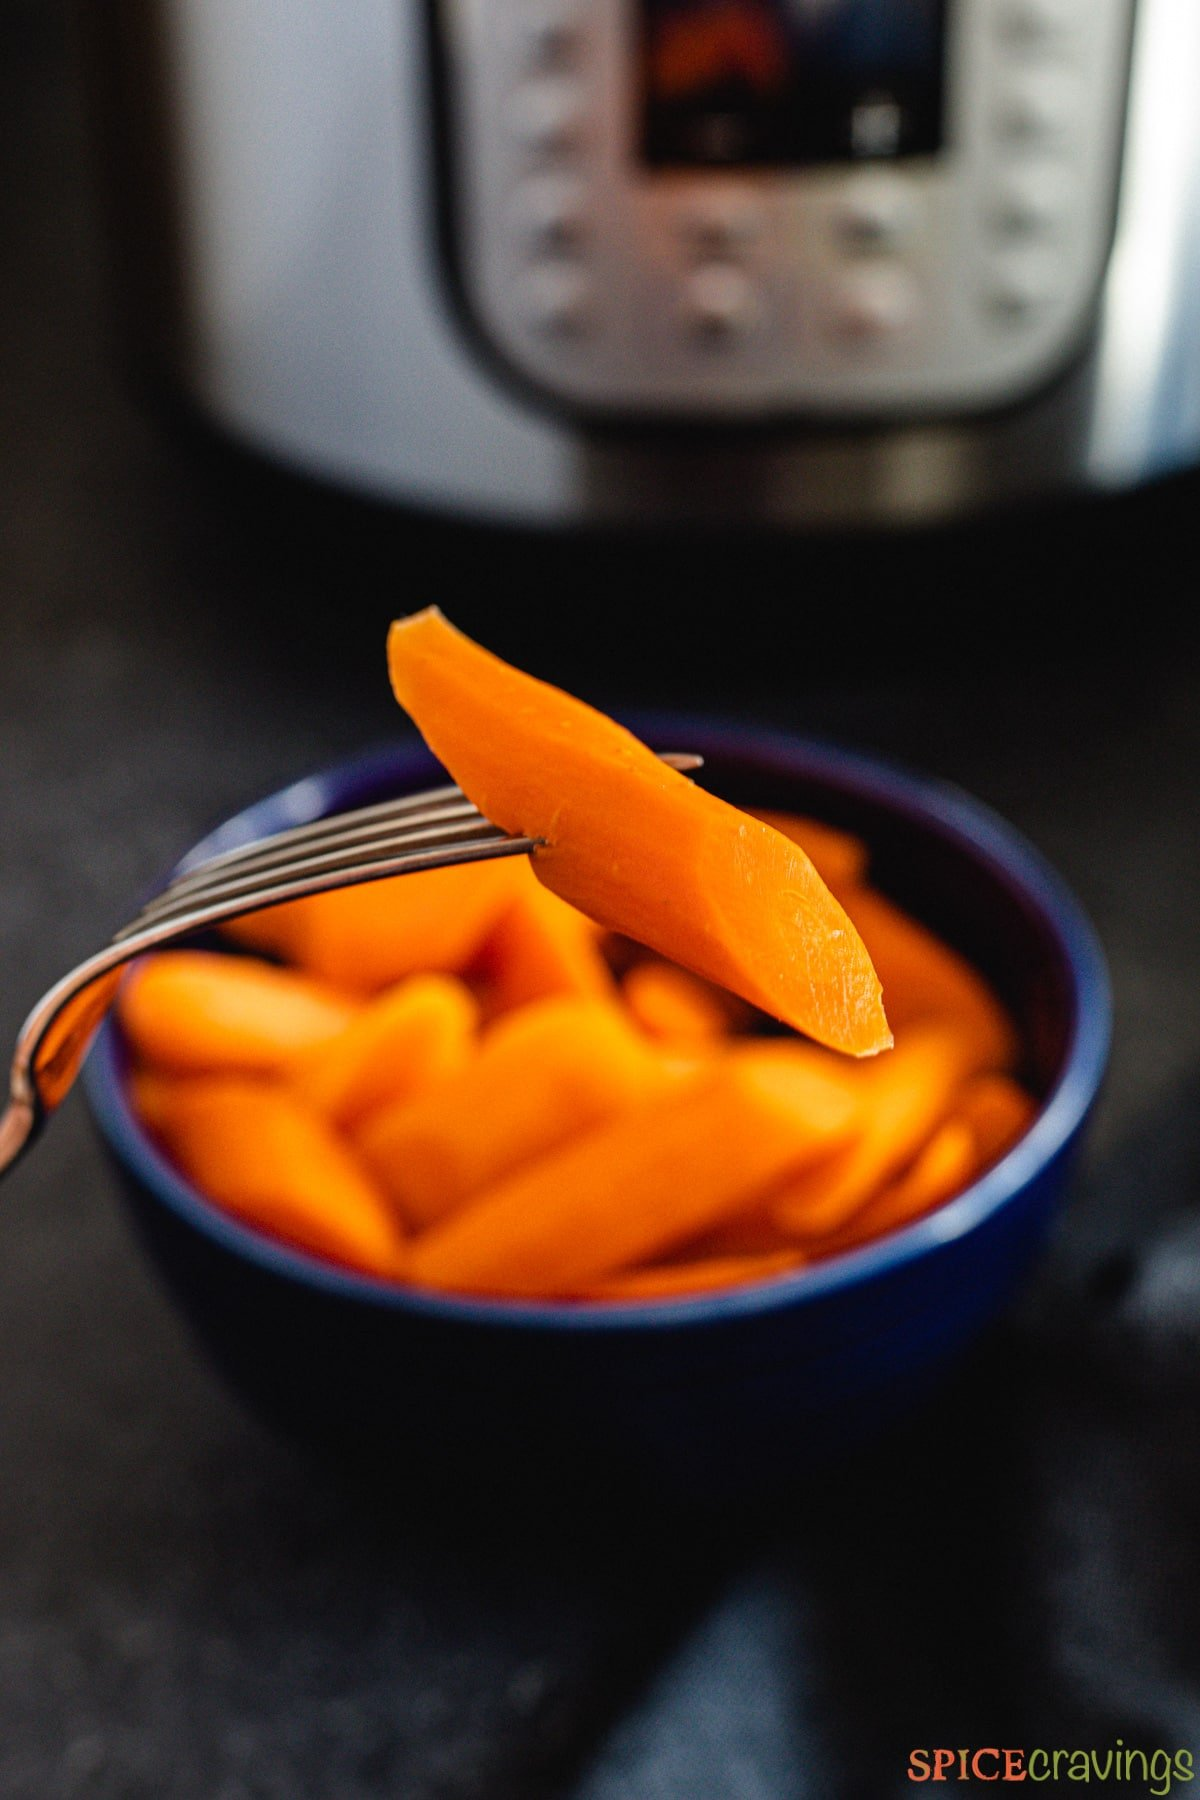 A fork lifting a steamed carrot from a bowl